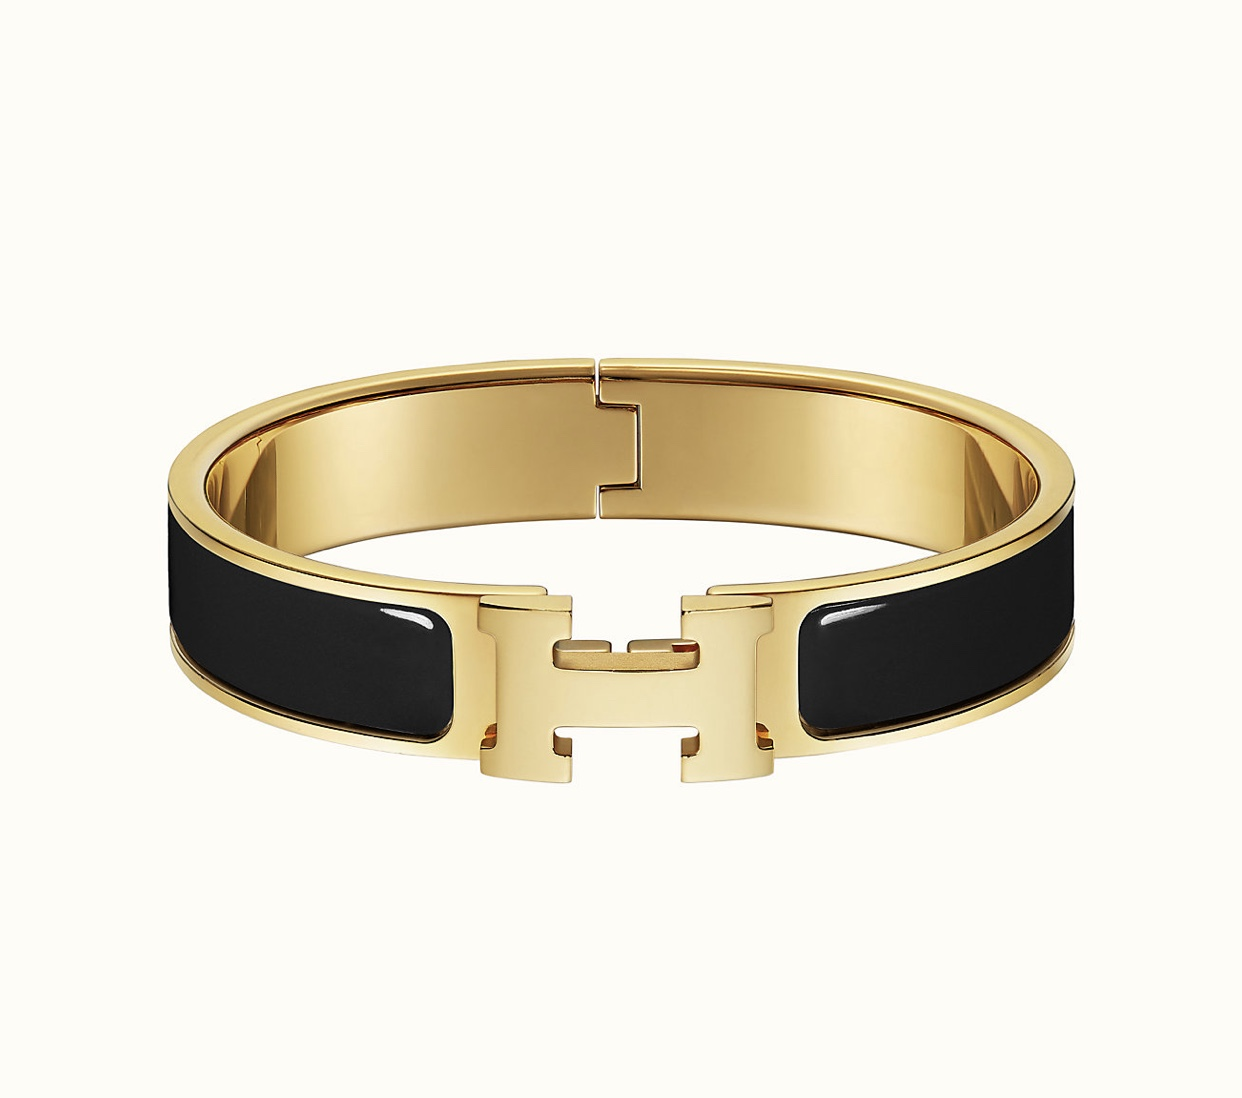 Hermes Clic H Bracelet 7.25 in Noir (and or Blanc)